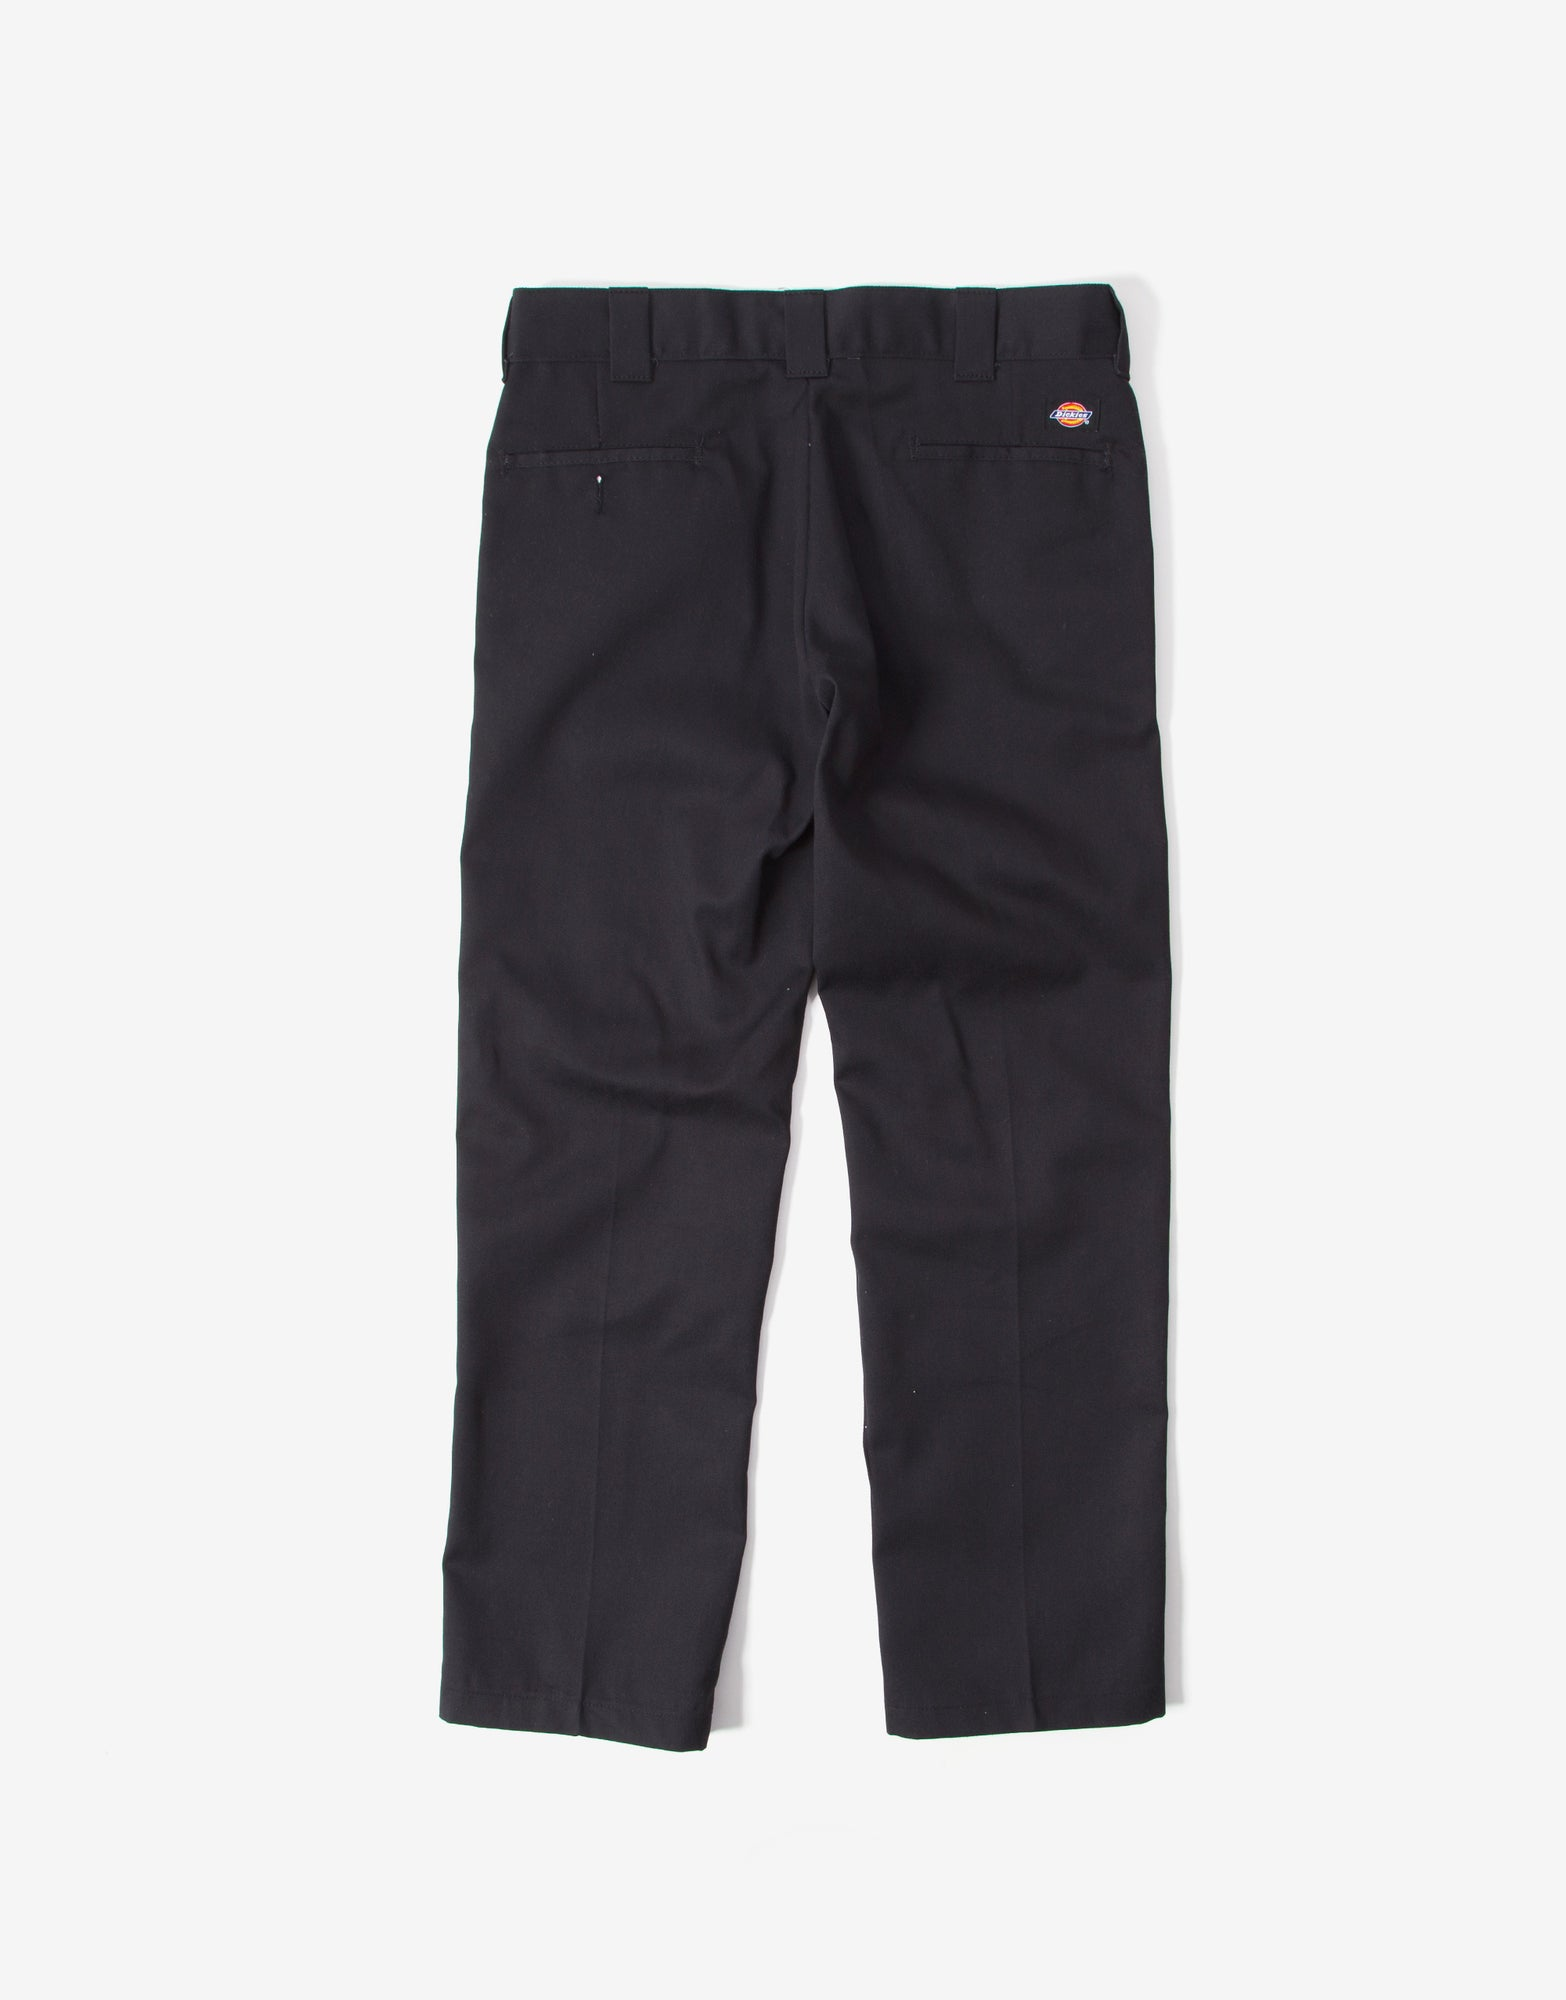 Dickies 873 Slim Straight Work Pant Trousers - Black